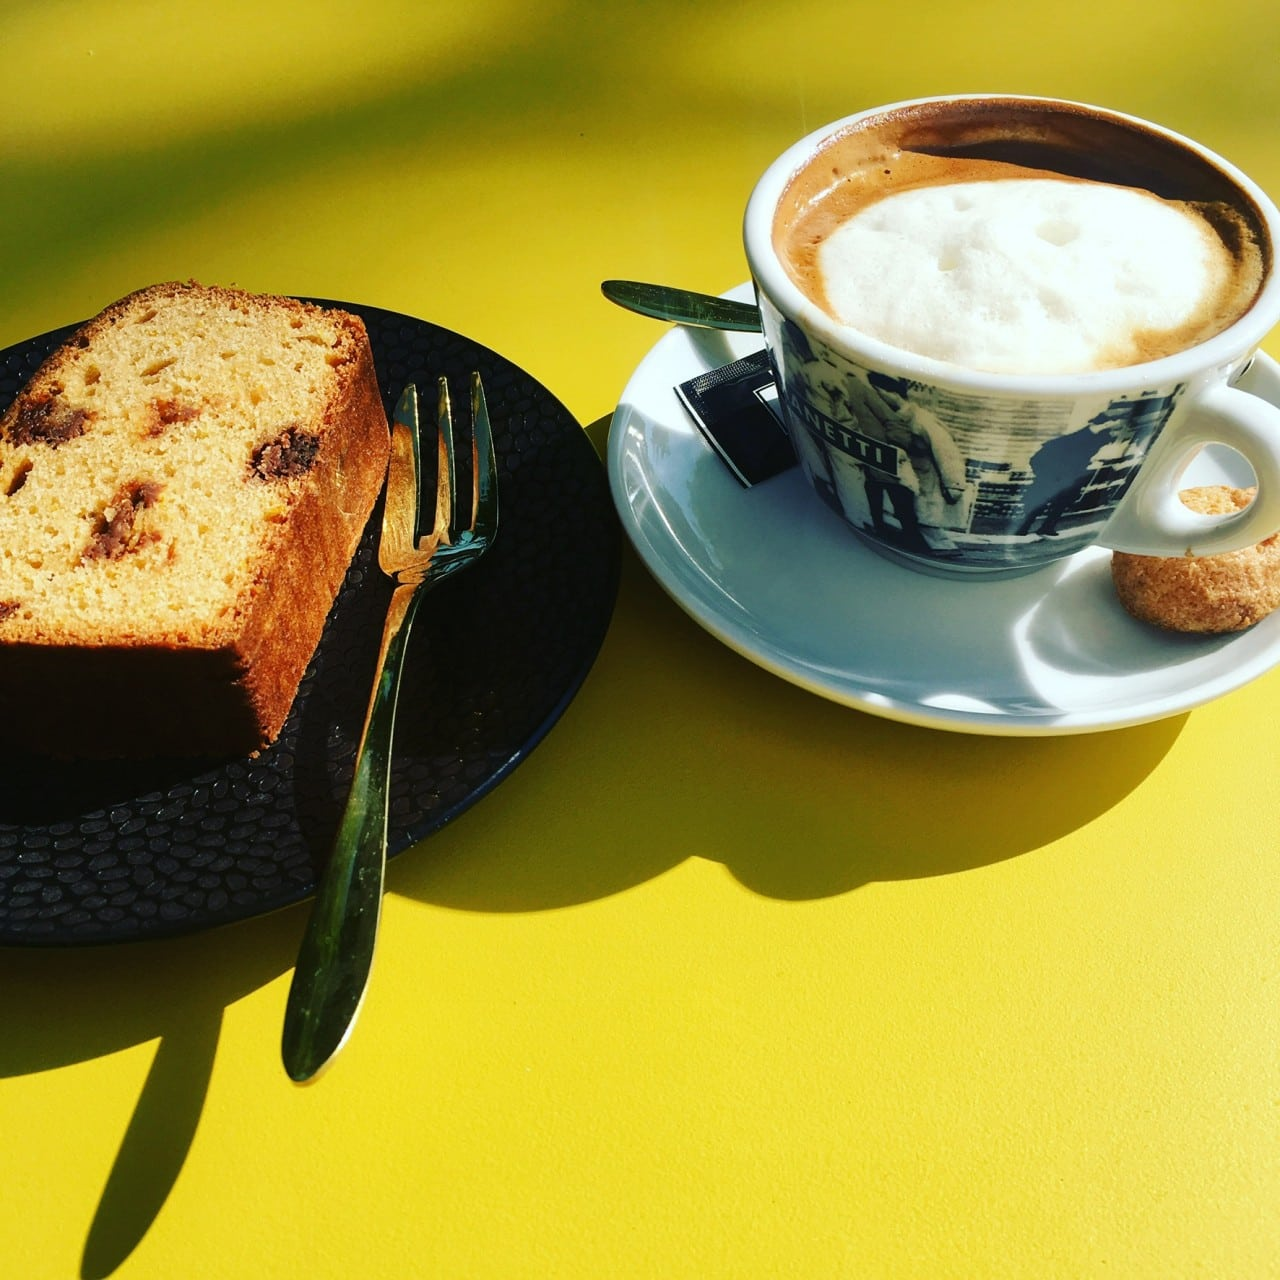 Gluten-free cake in Utrecht: three recommendations - Explore